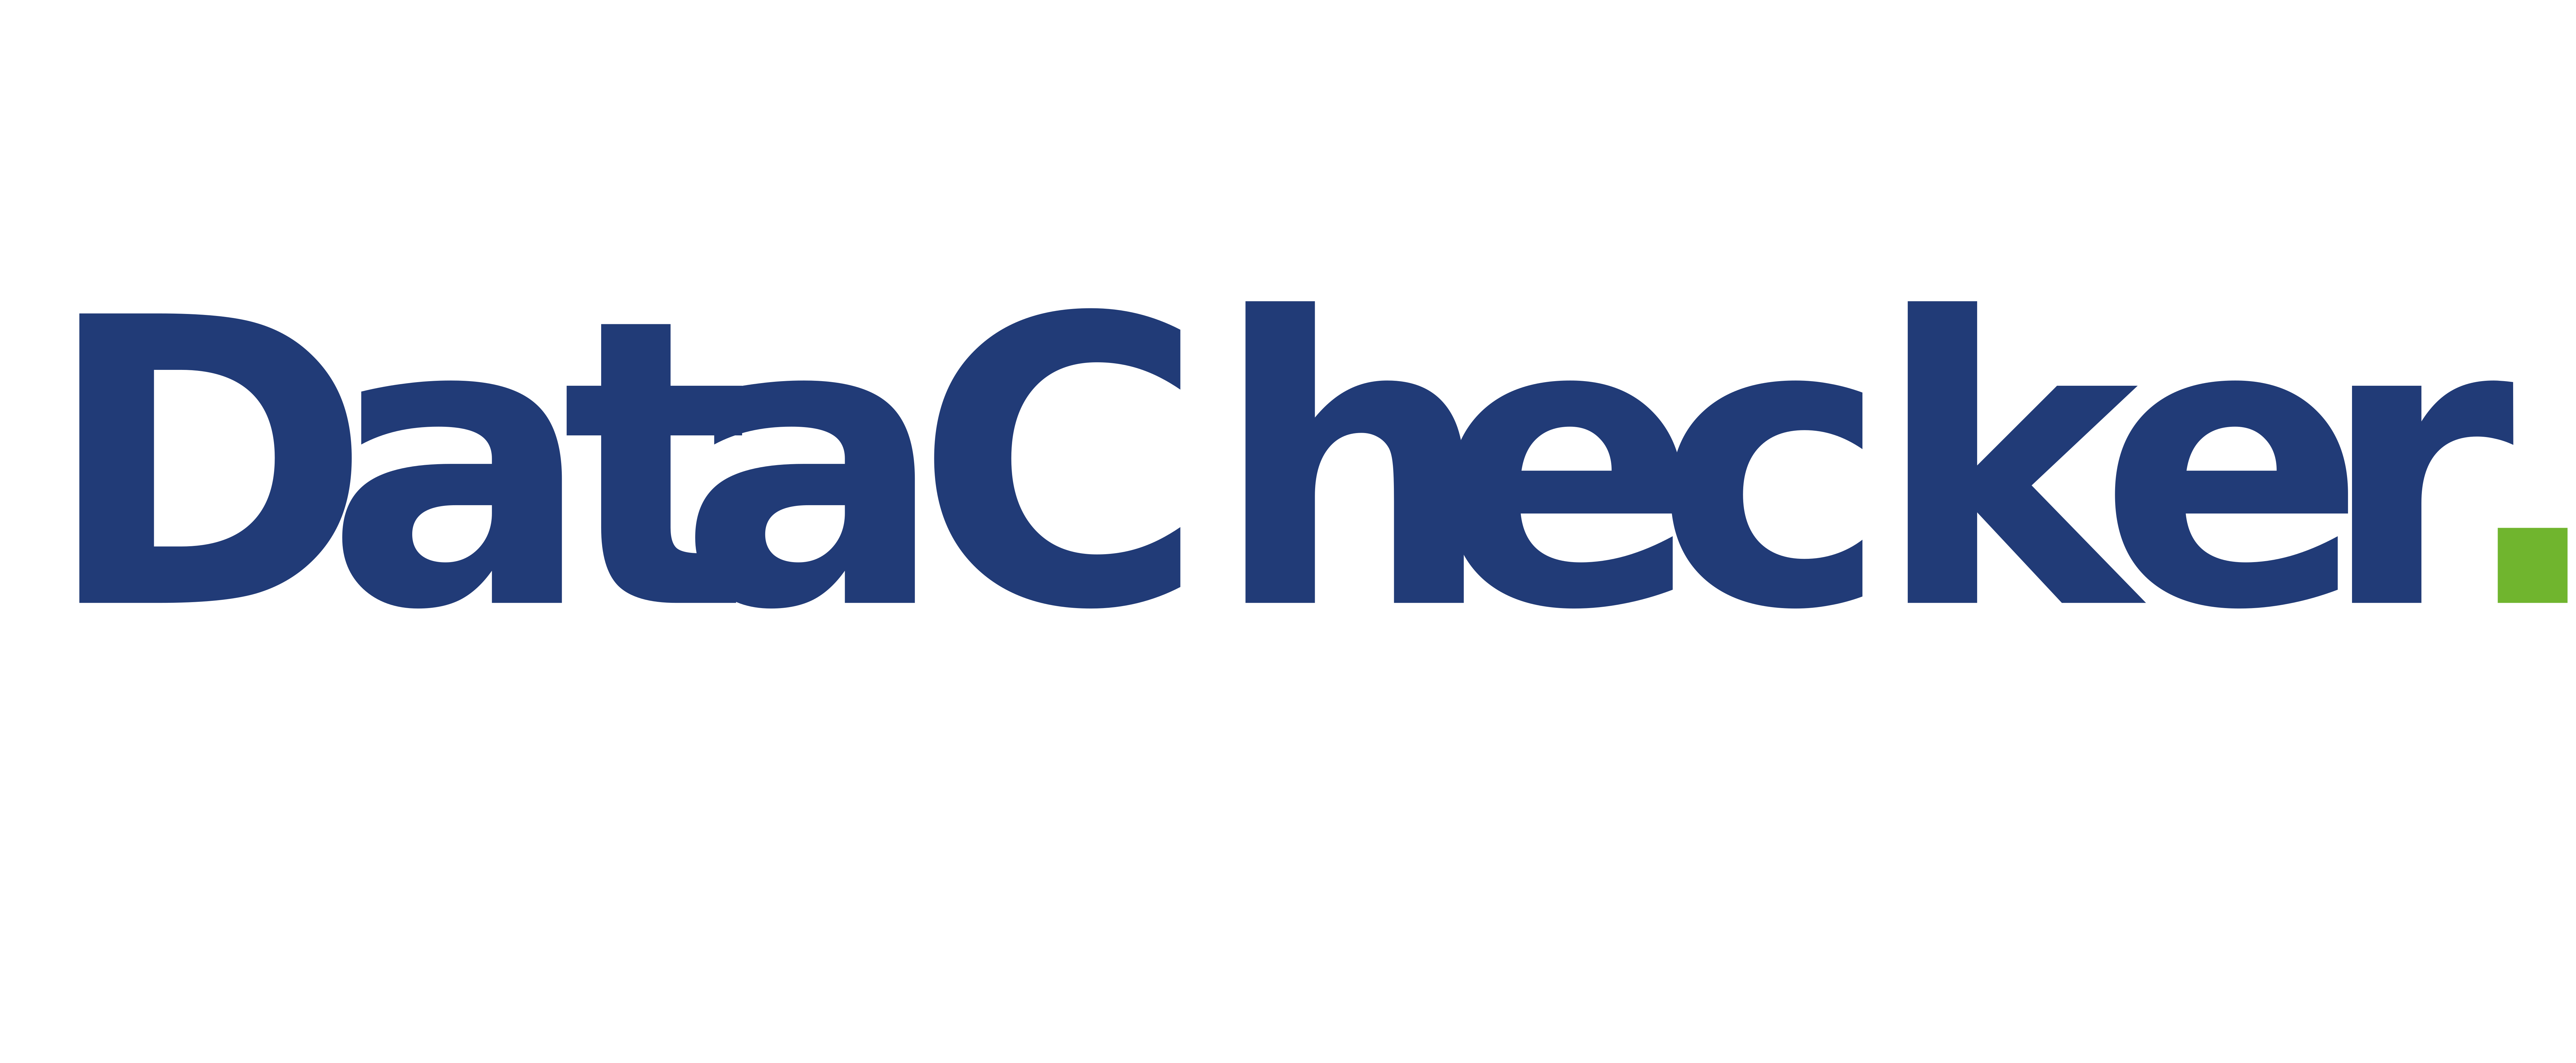 datachecker_logo